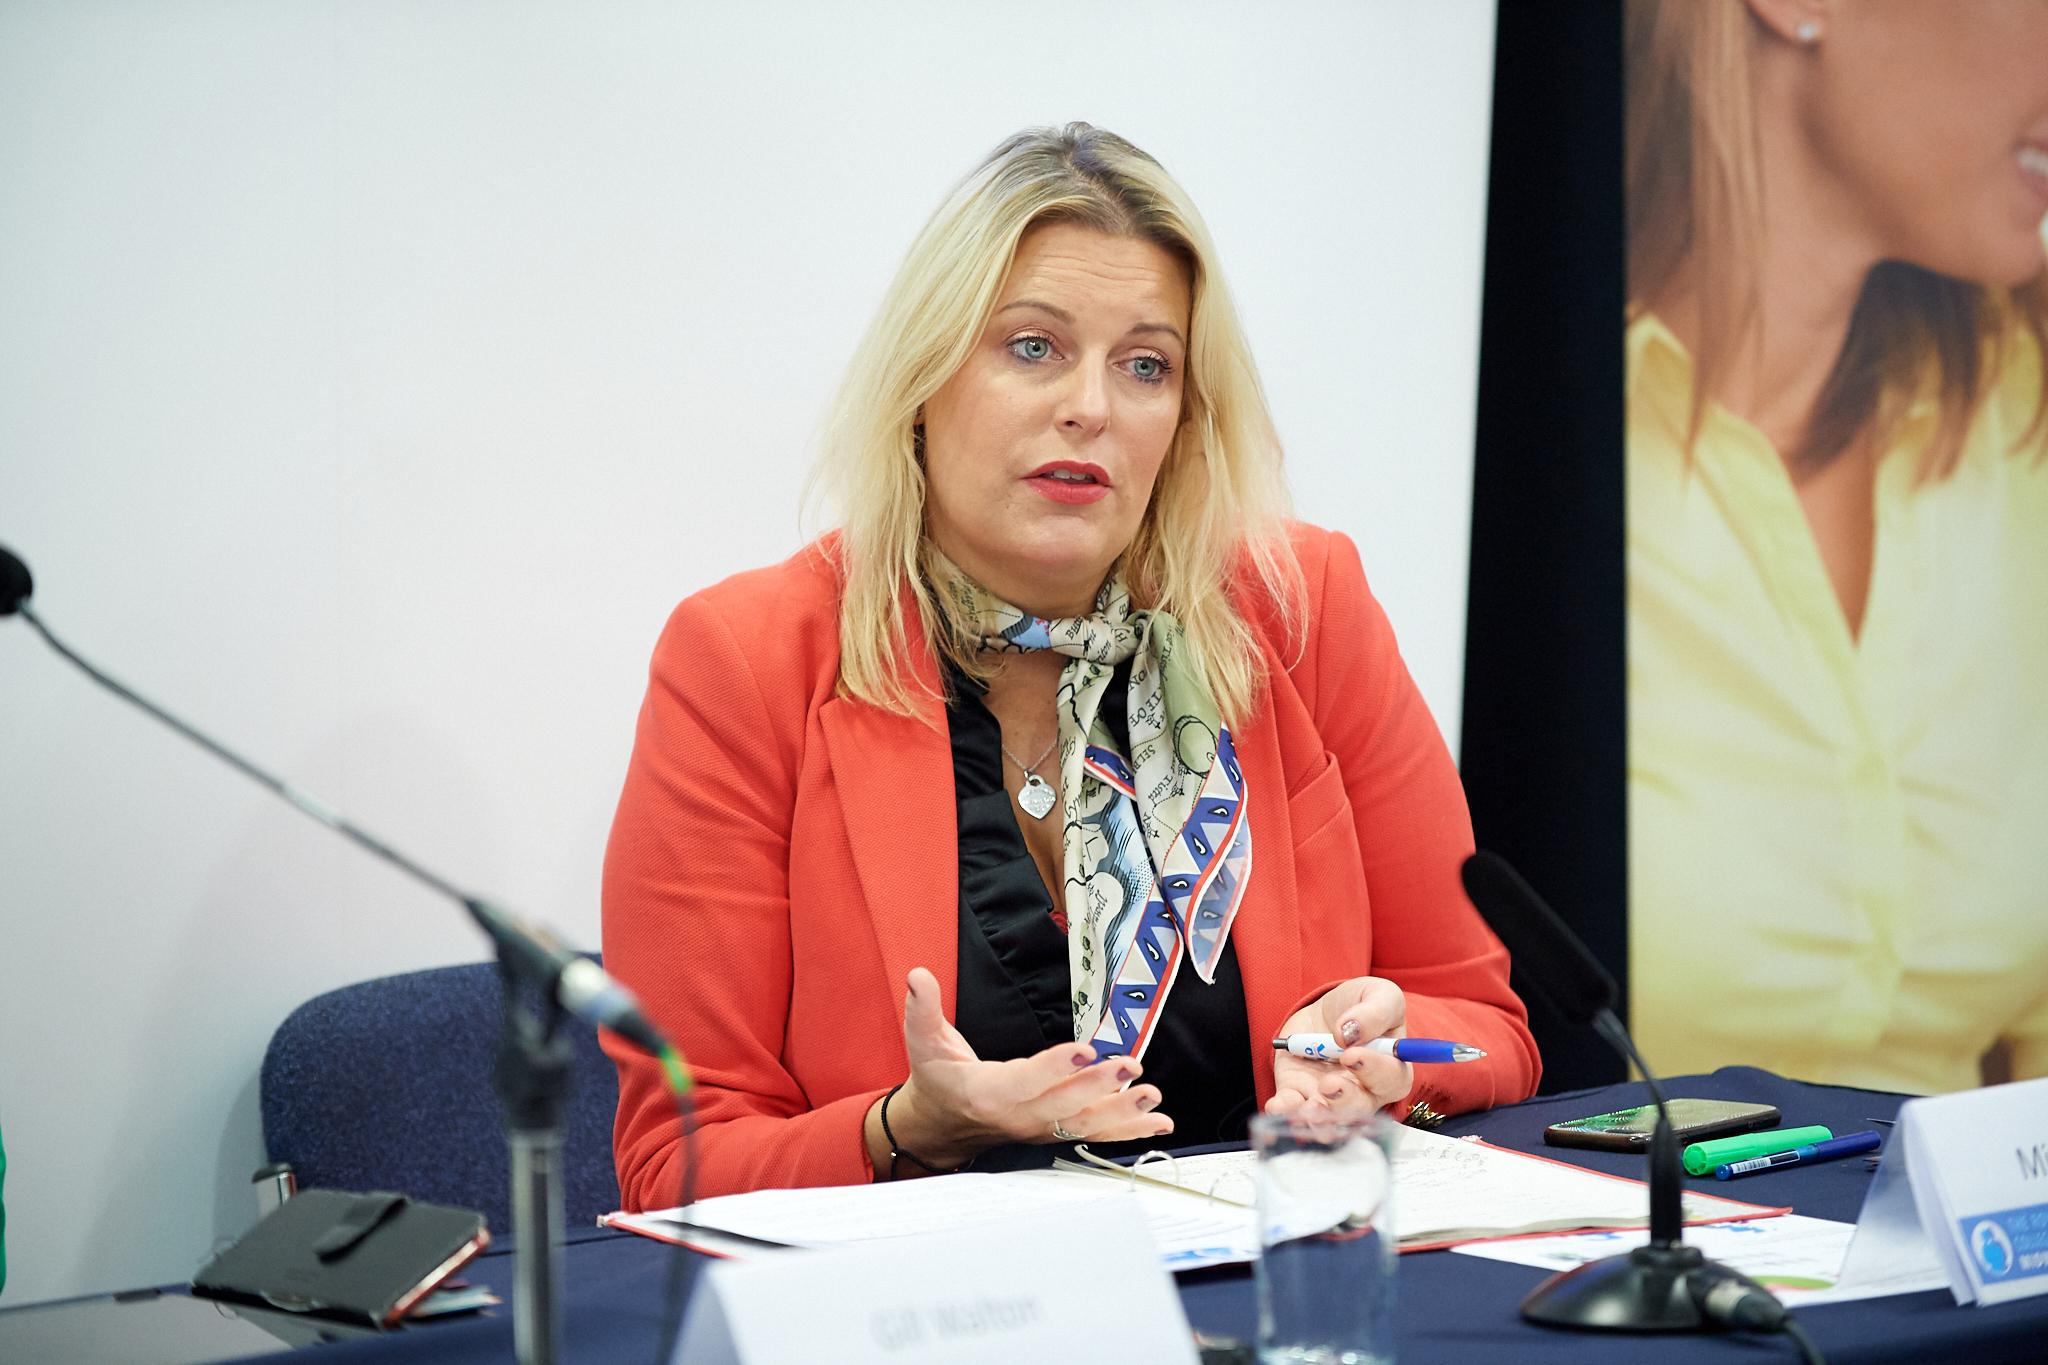 Mims Davies MP speaking at The Royal College of Midwives Fringe